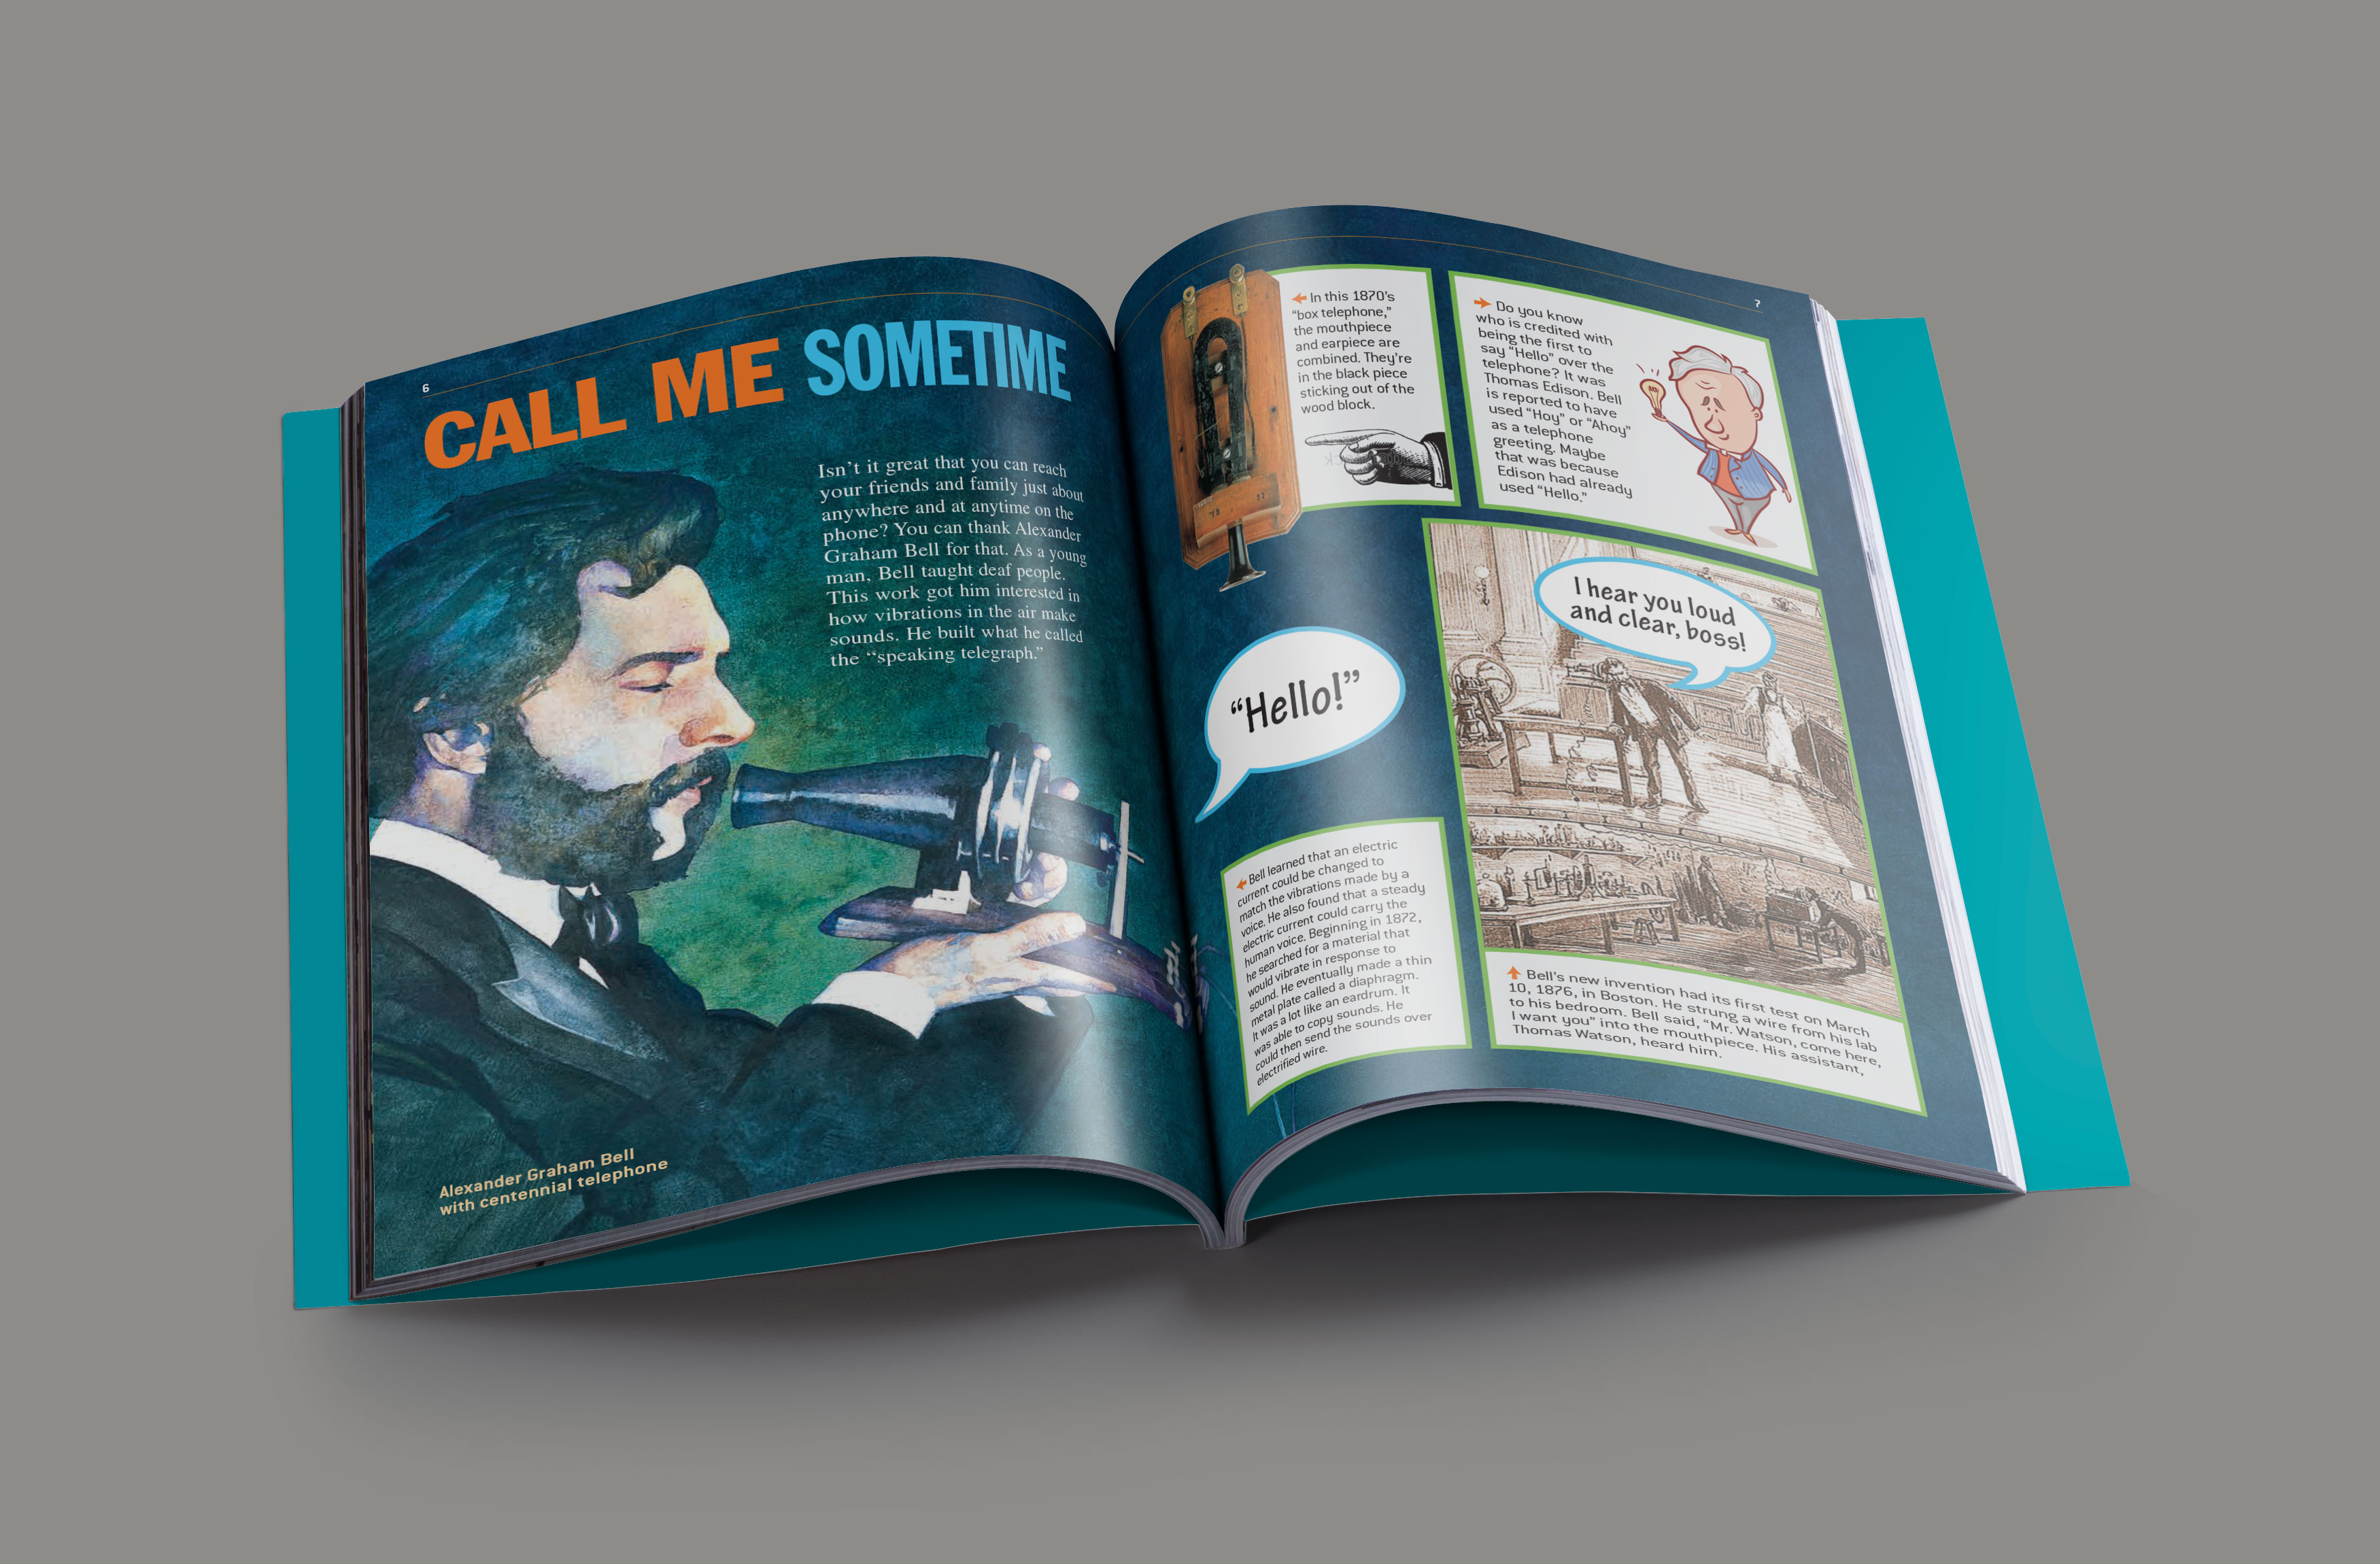 magazine article spread about Alexander Graham Bell's invention of the telephone